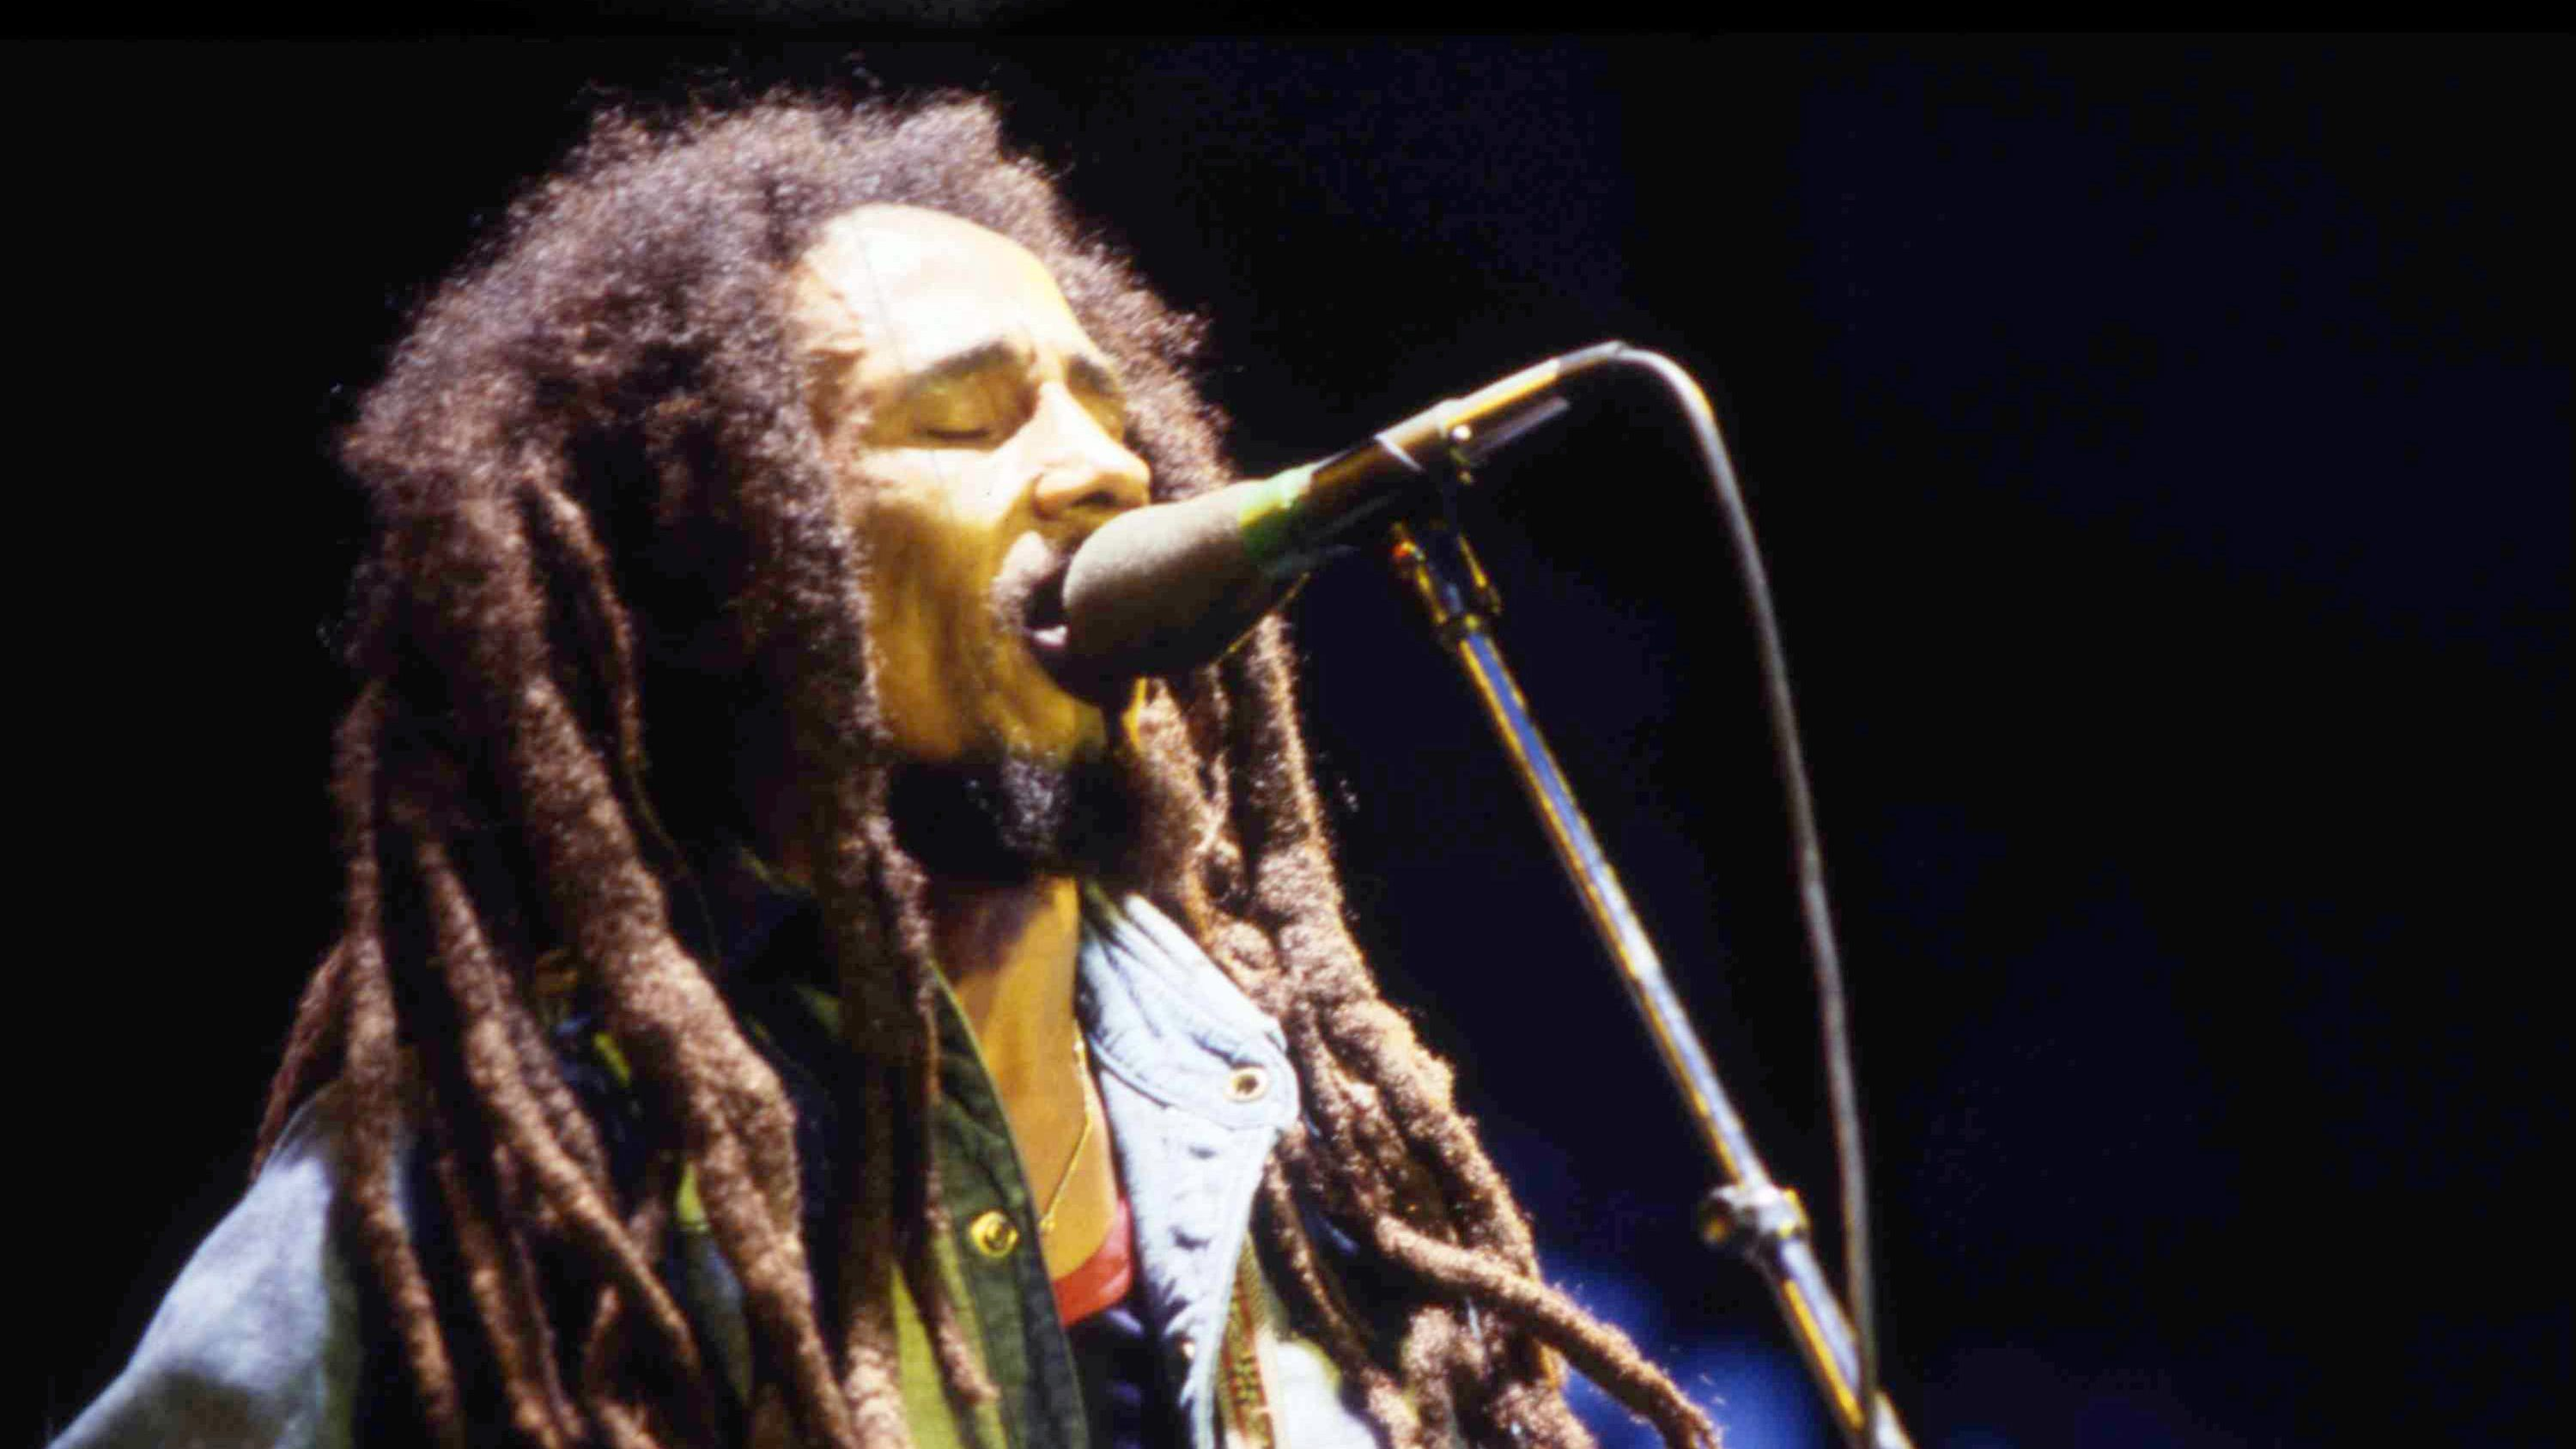 Jamaican Reggae singer Bob Marley performs on stage during a concert in Bourget, Paris, on July 3, 1980. (AP Photo/Str)